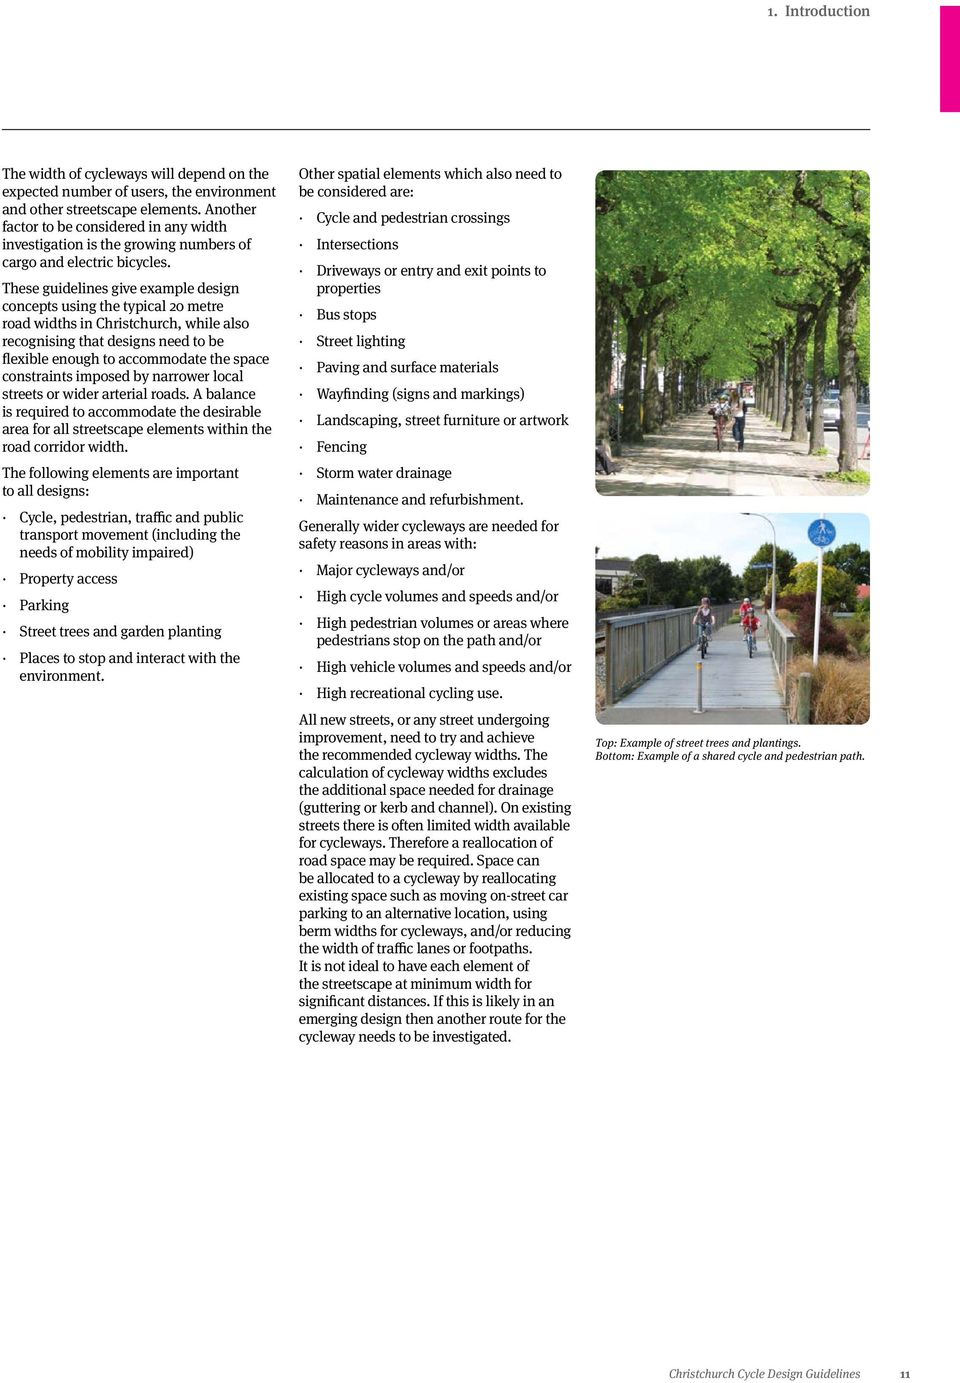 These guidelines give example design concepts using the typical 20 metre road widths in Christchurch, while also recognising that designs need to be flexible enough to accommodate the space